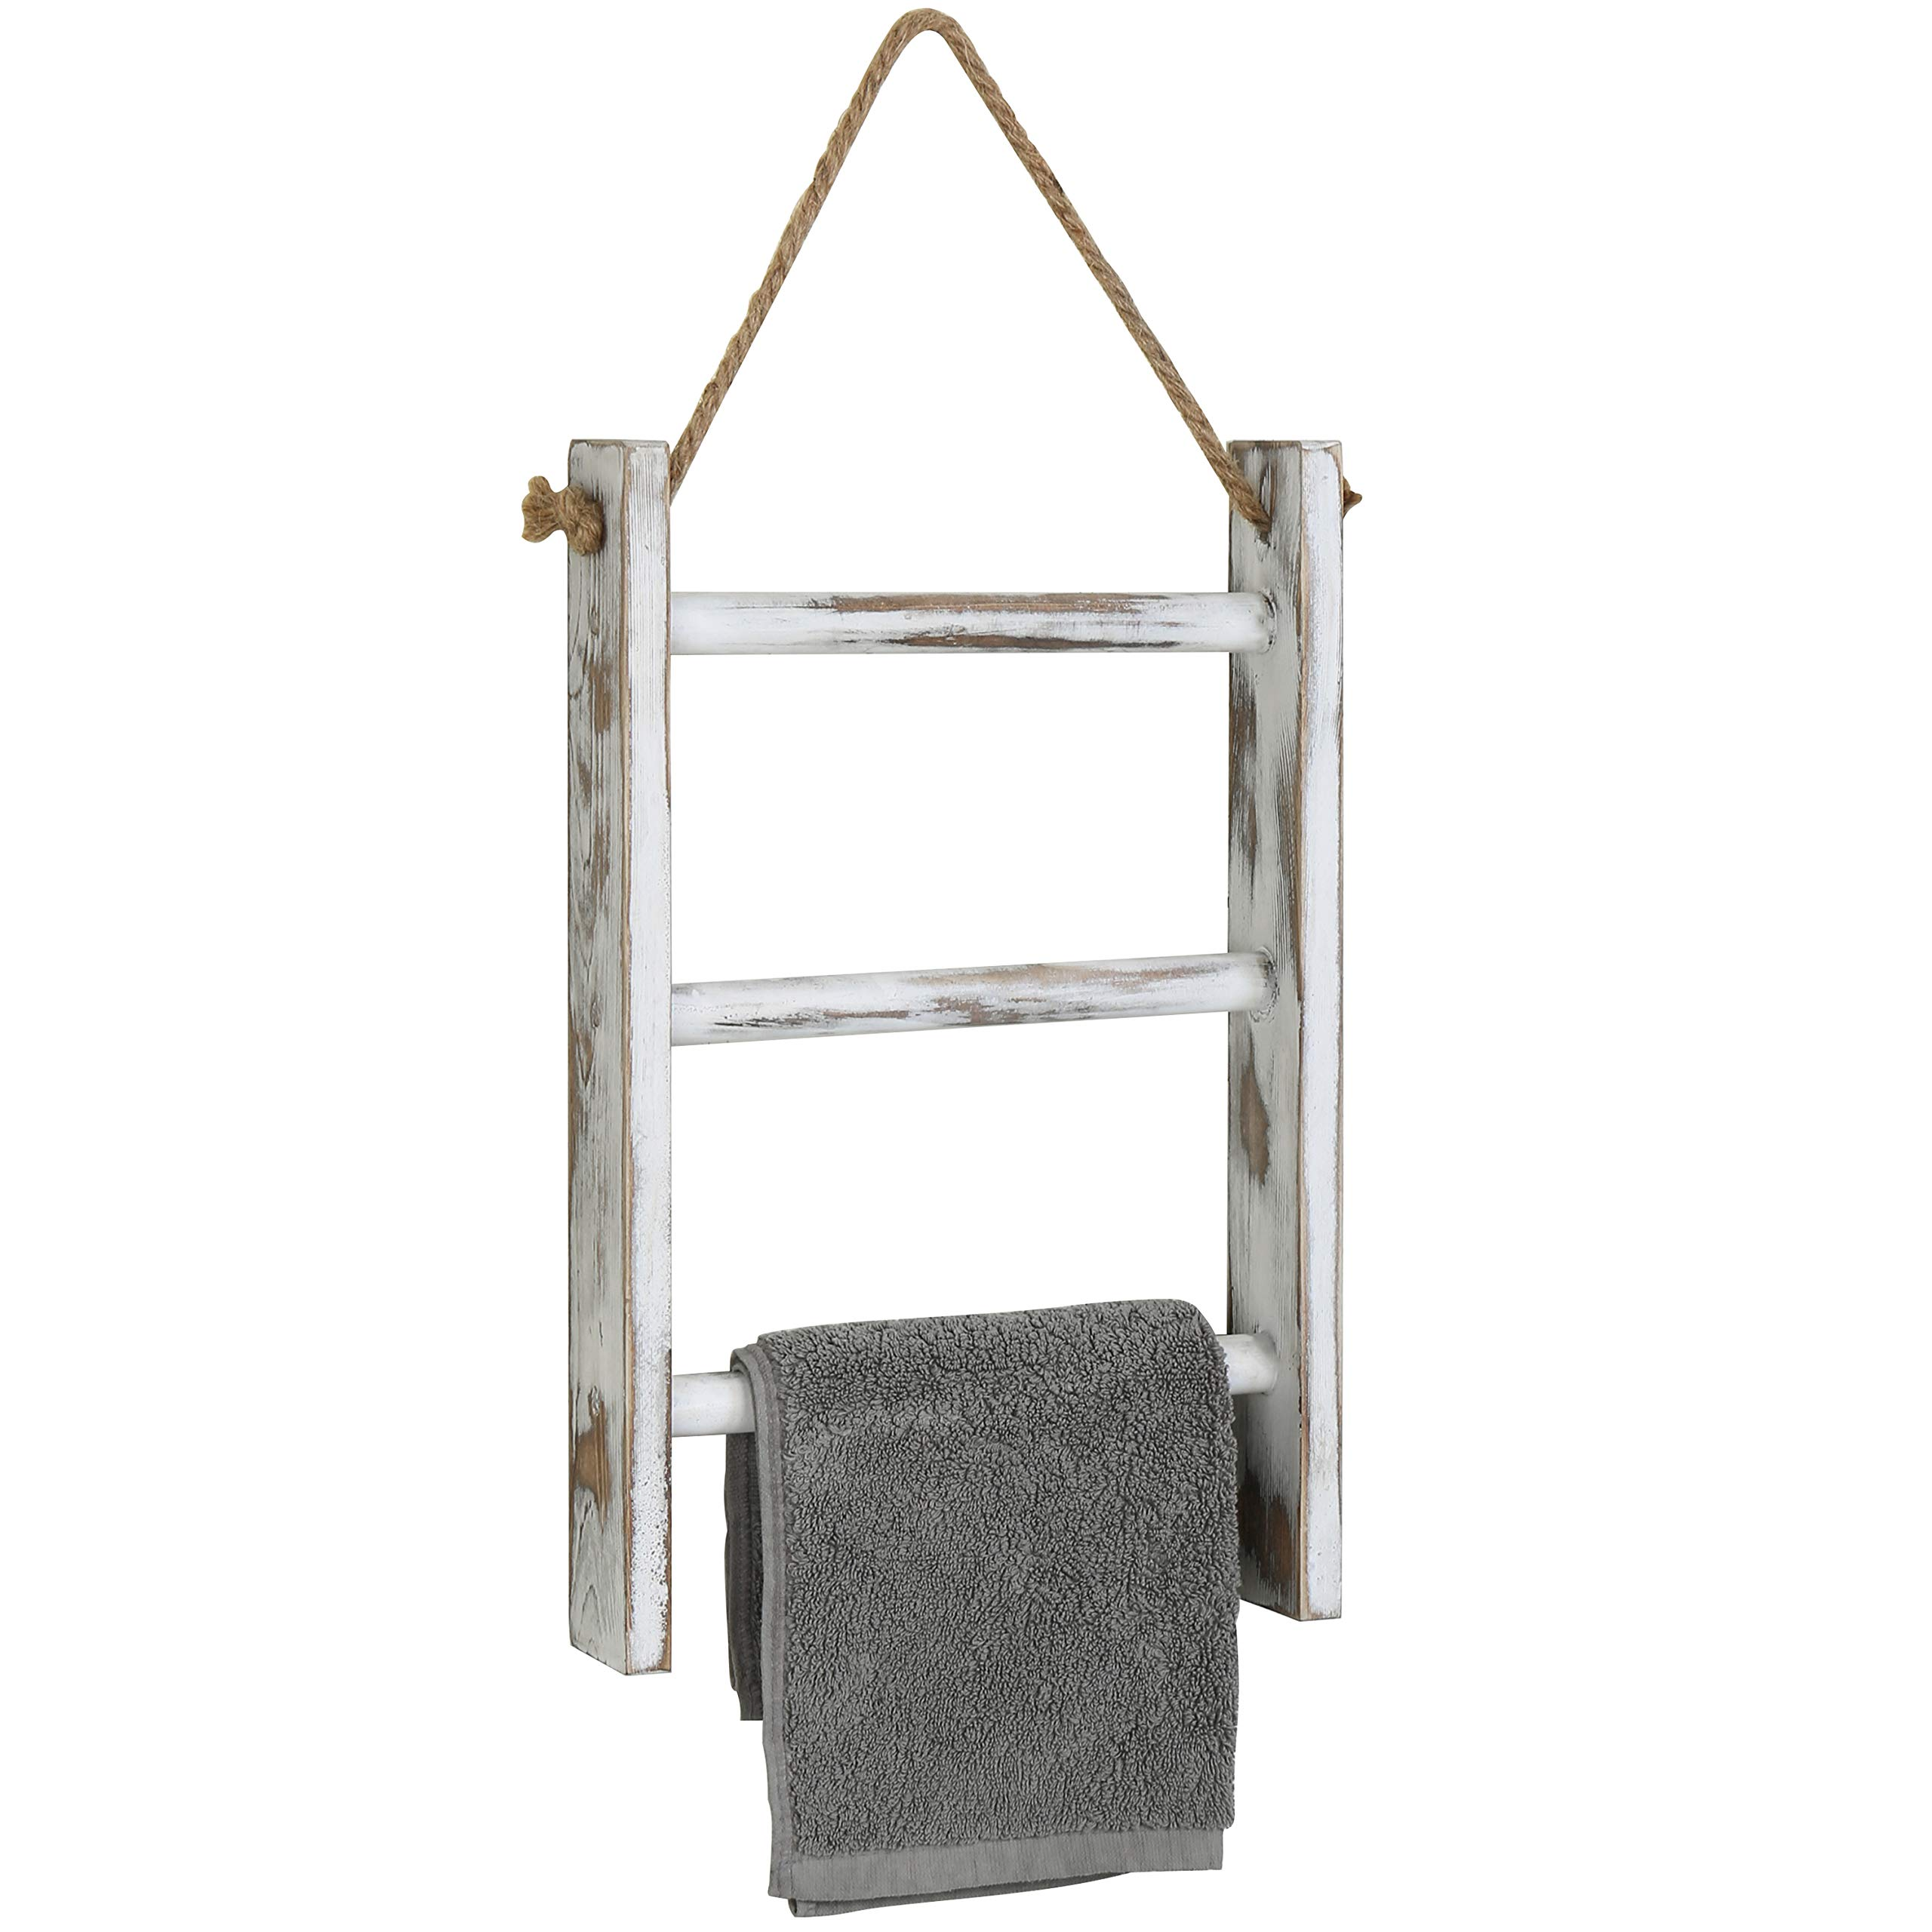 MyGift 3-Tier Whitewashed Wood Wall-Hanging Towel Storage Ladder with Rope by MyGift